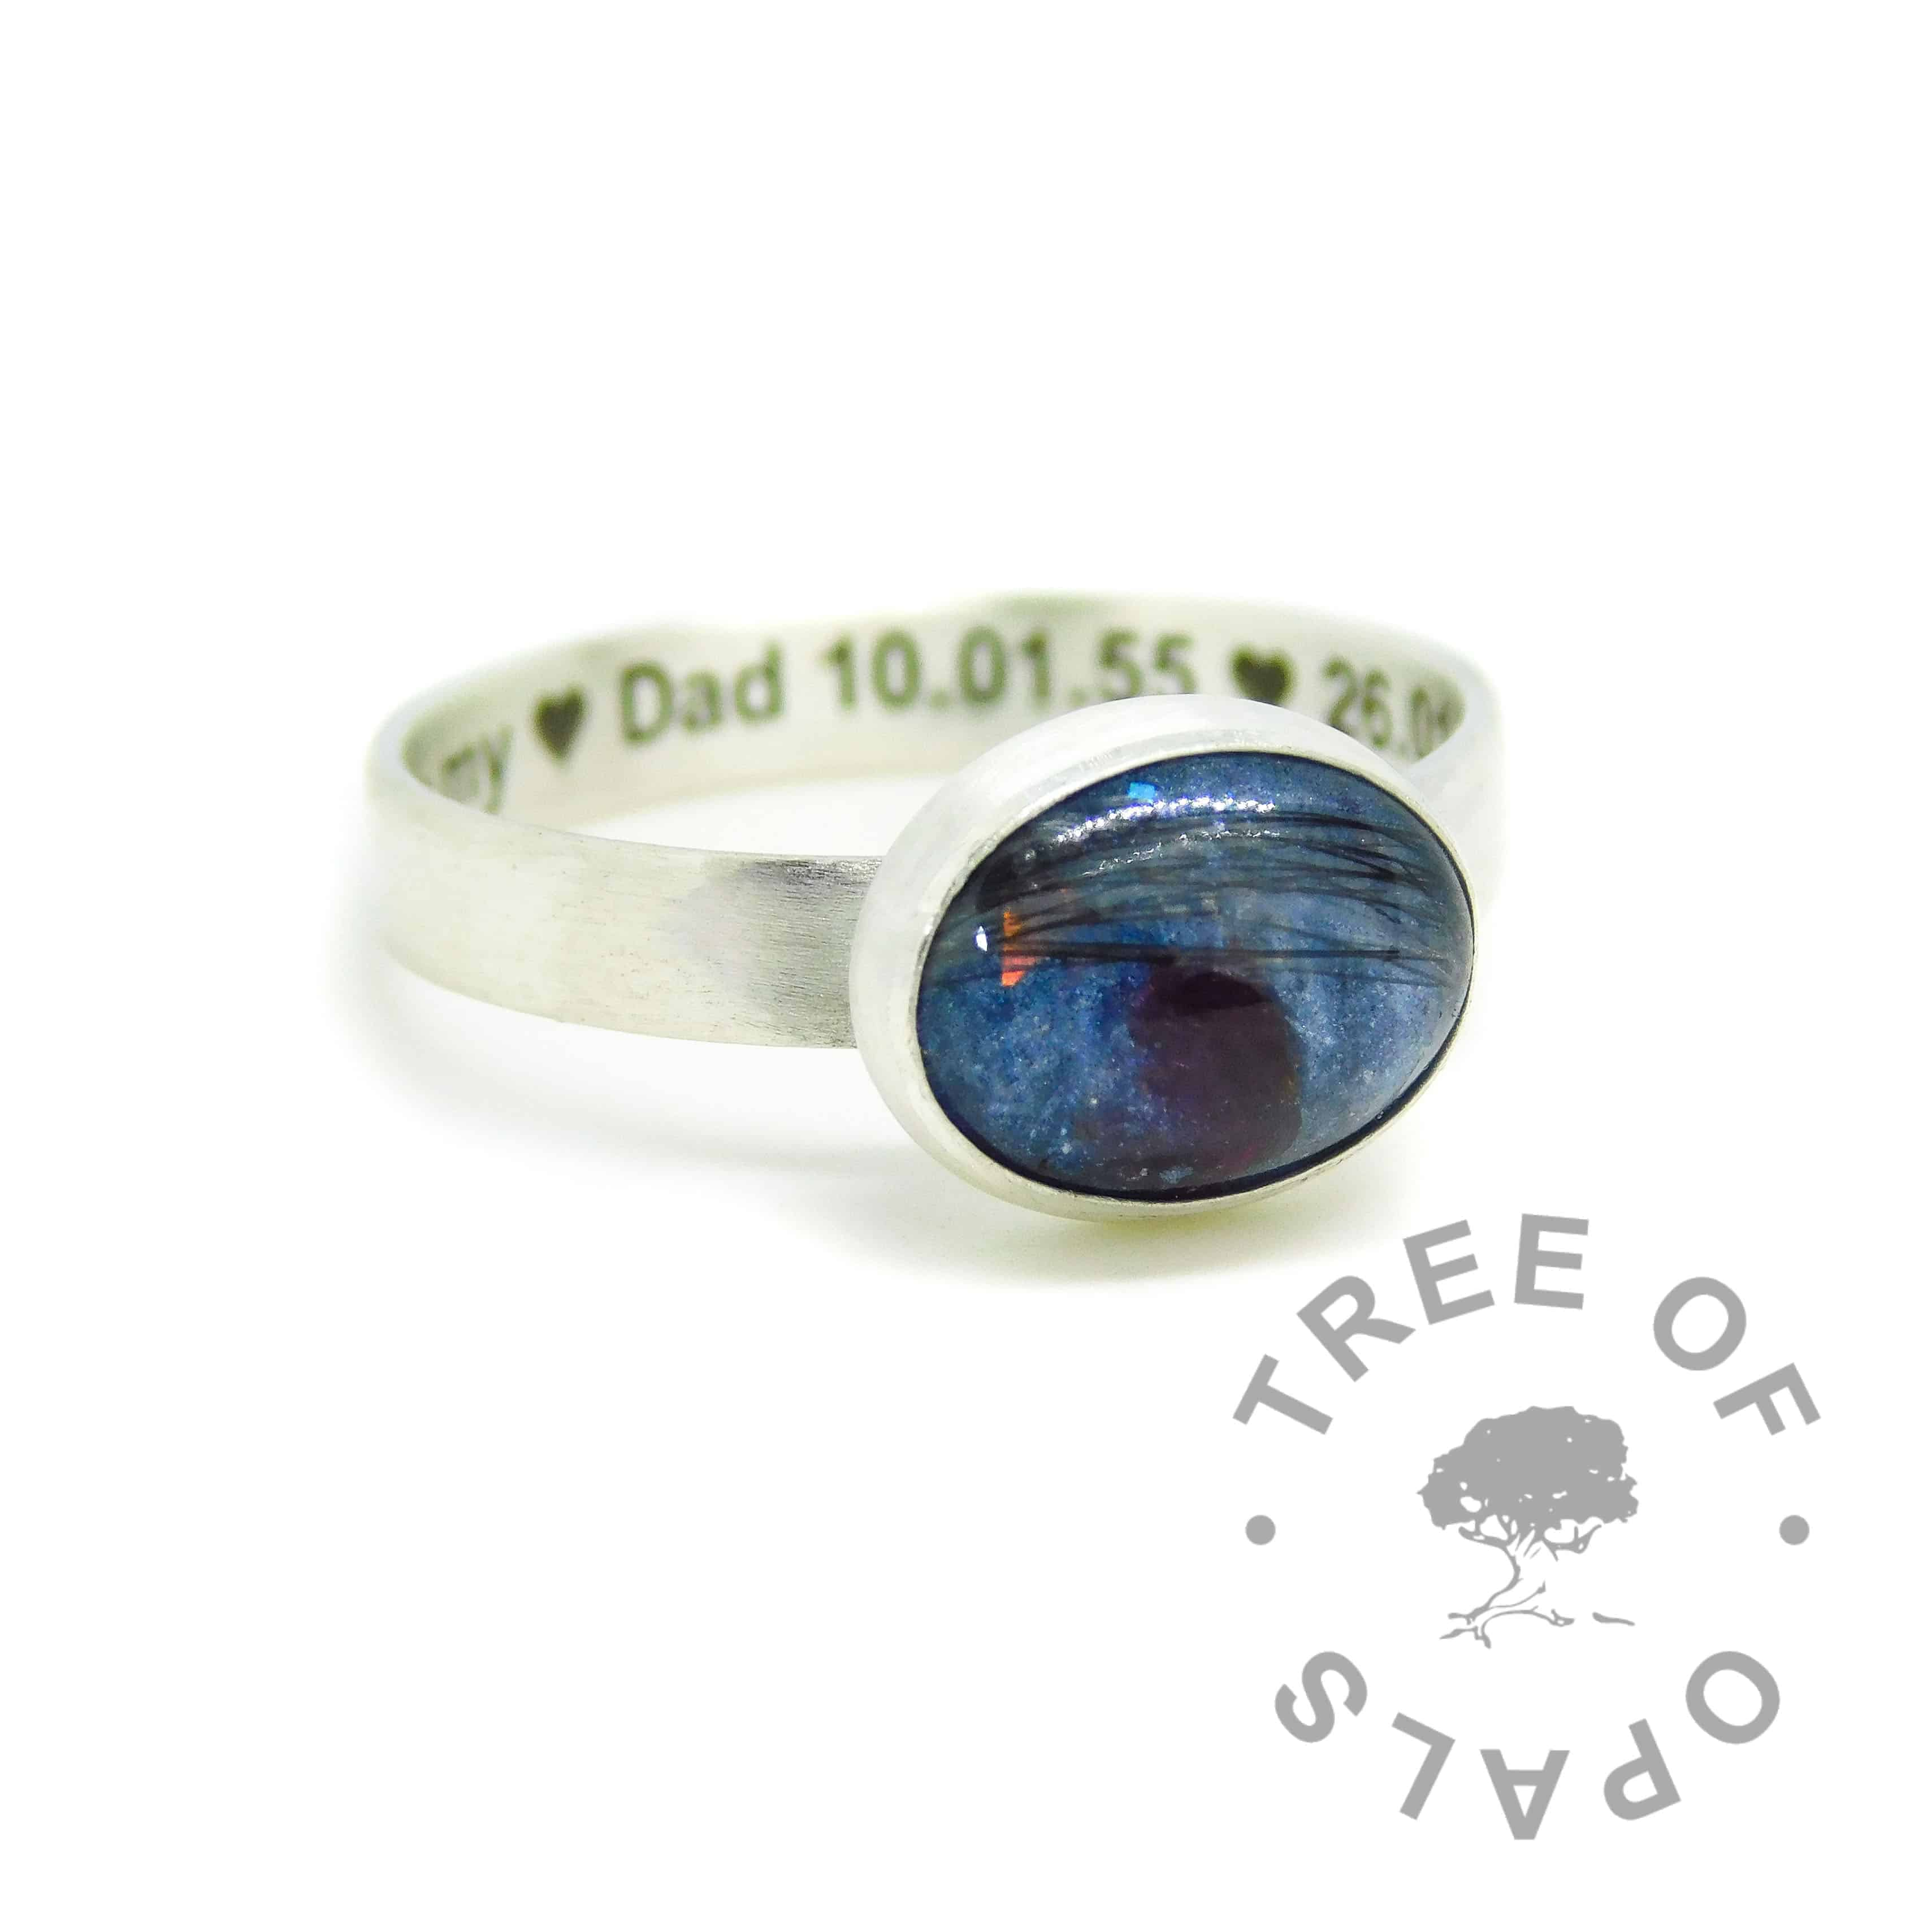 Engraved brushed band lock of hair ring with Aegean blue resin sparkle mix and salt and pepper grey hair, with January birthstone red garnet. Engraved inside in Arial font and hearts. Handmade solid sterling silver memorial ring